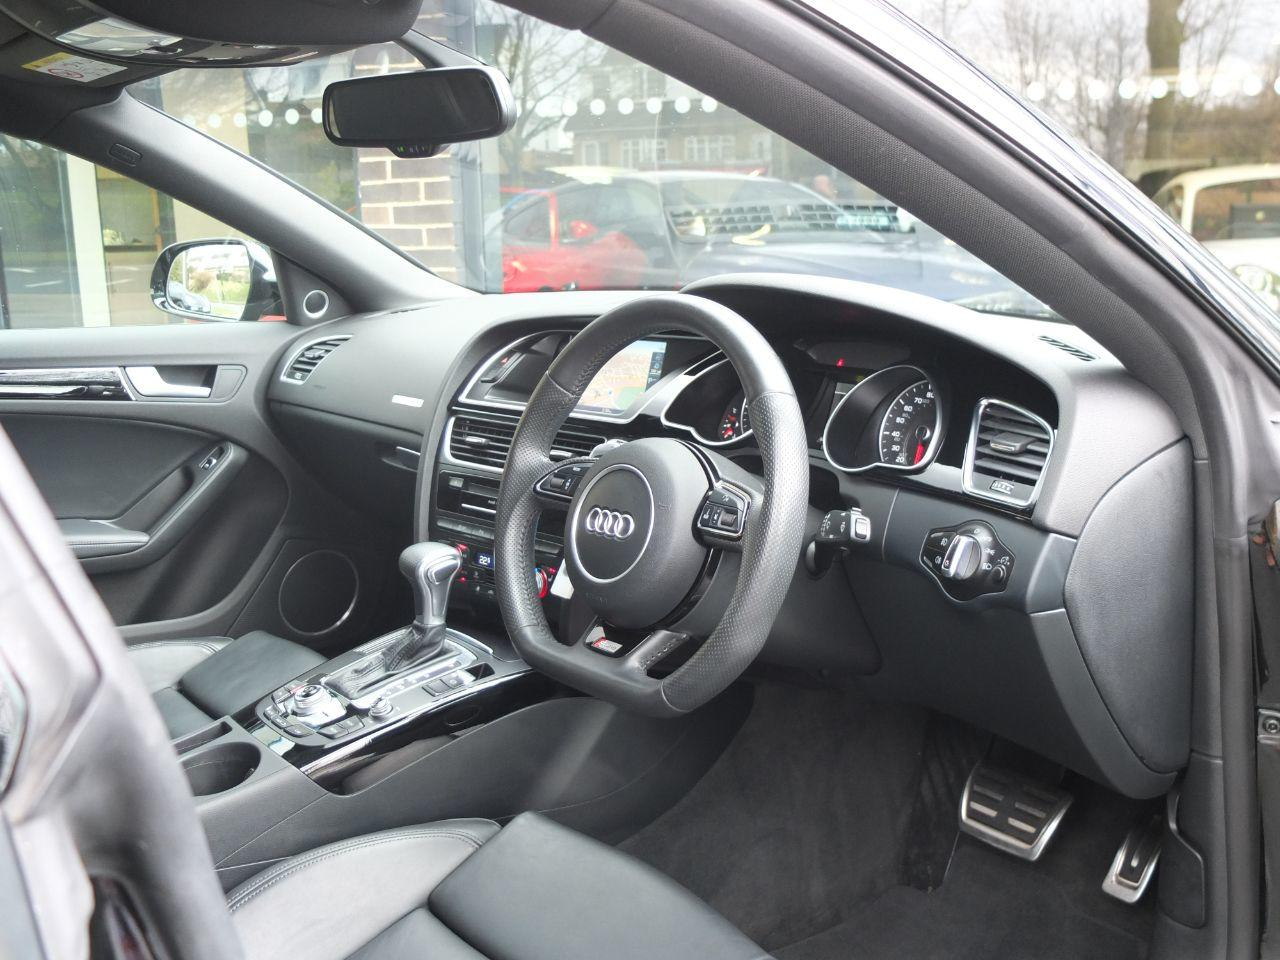 Audi A5 Sportback 2.0 TDI quattro Black Edition Plus S tronic Hatchback Diesel Mythos Black Metallic